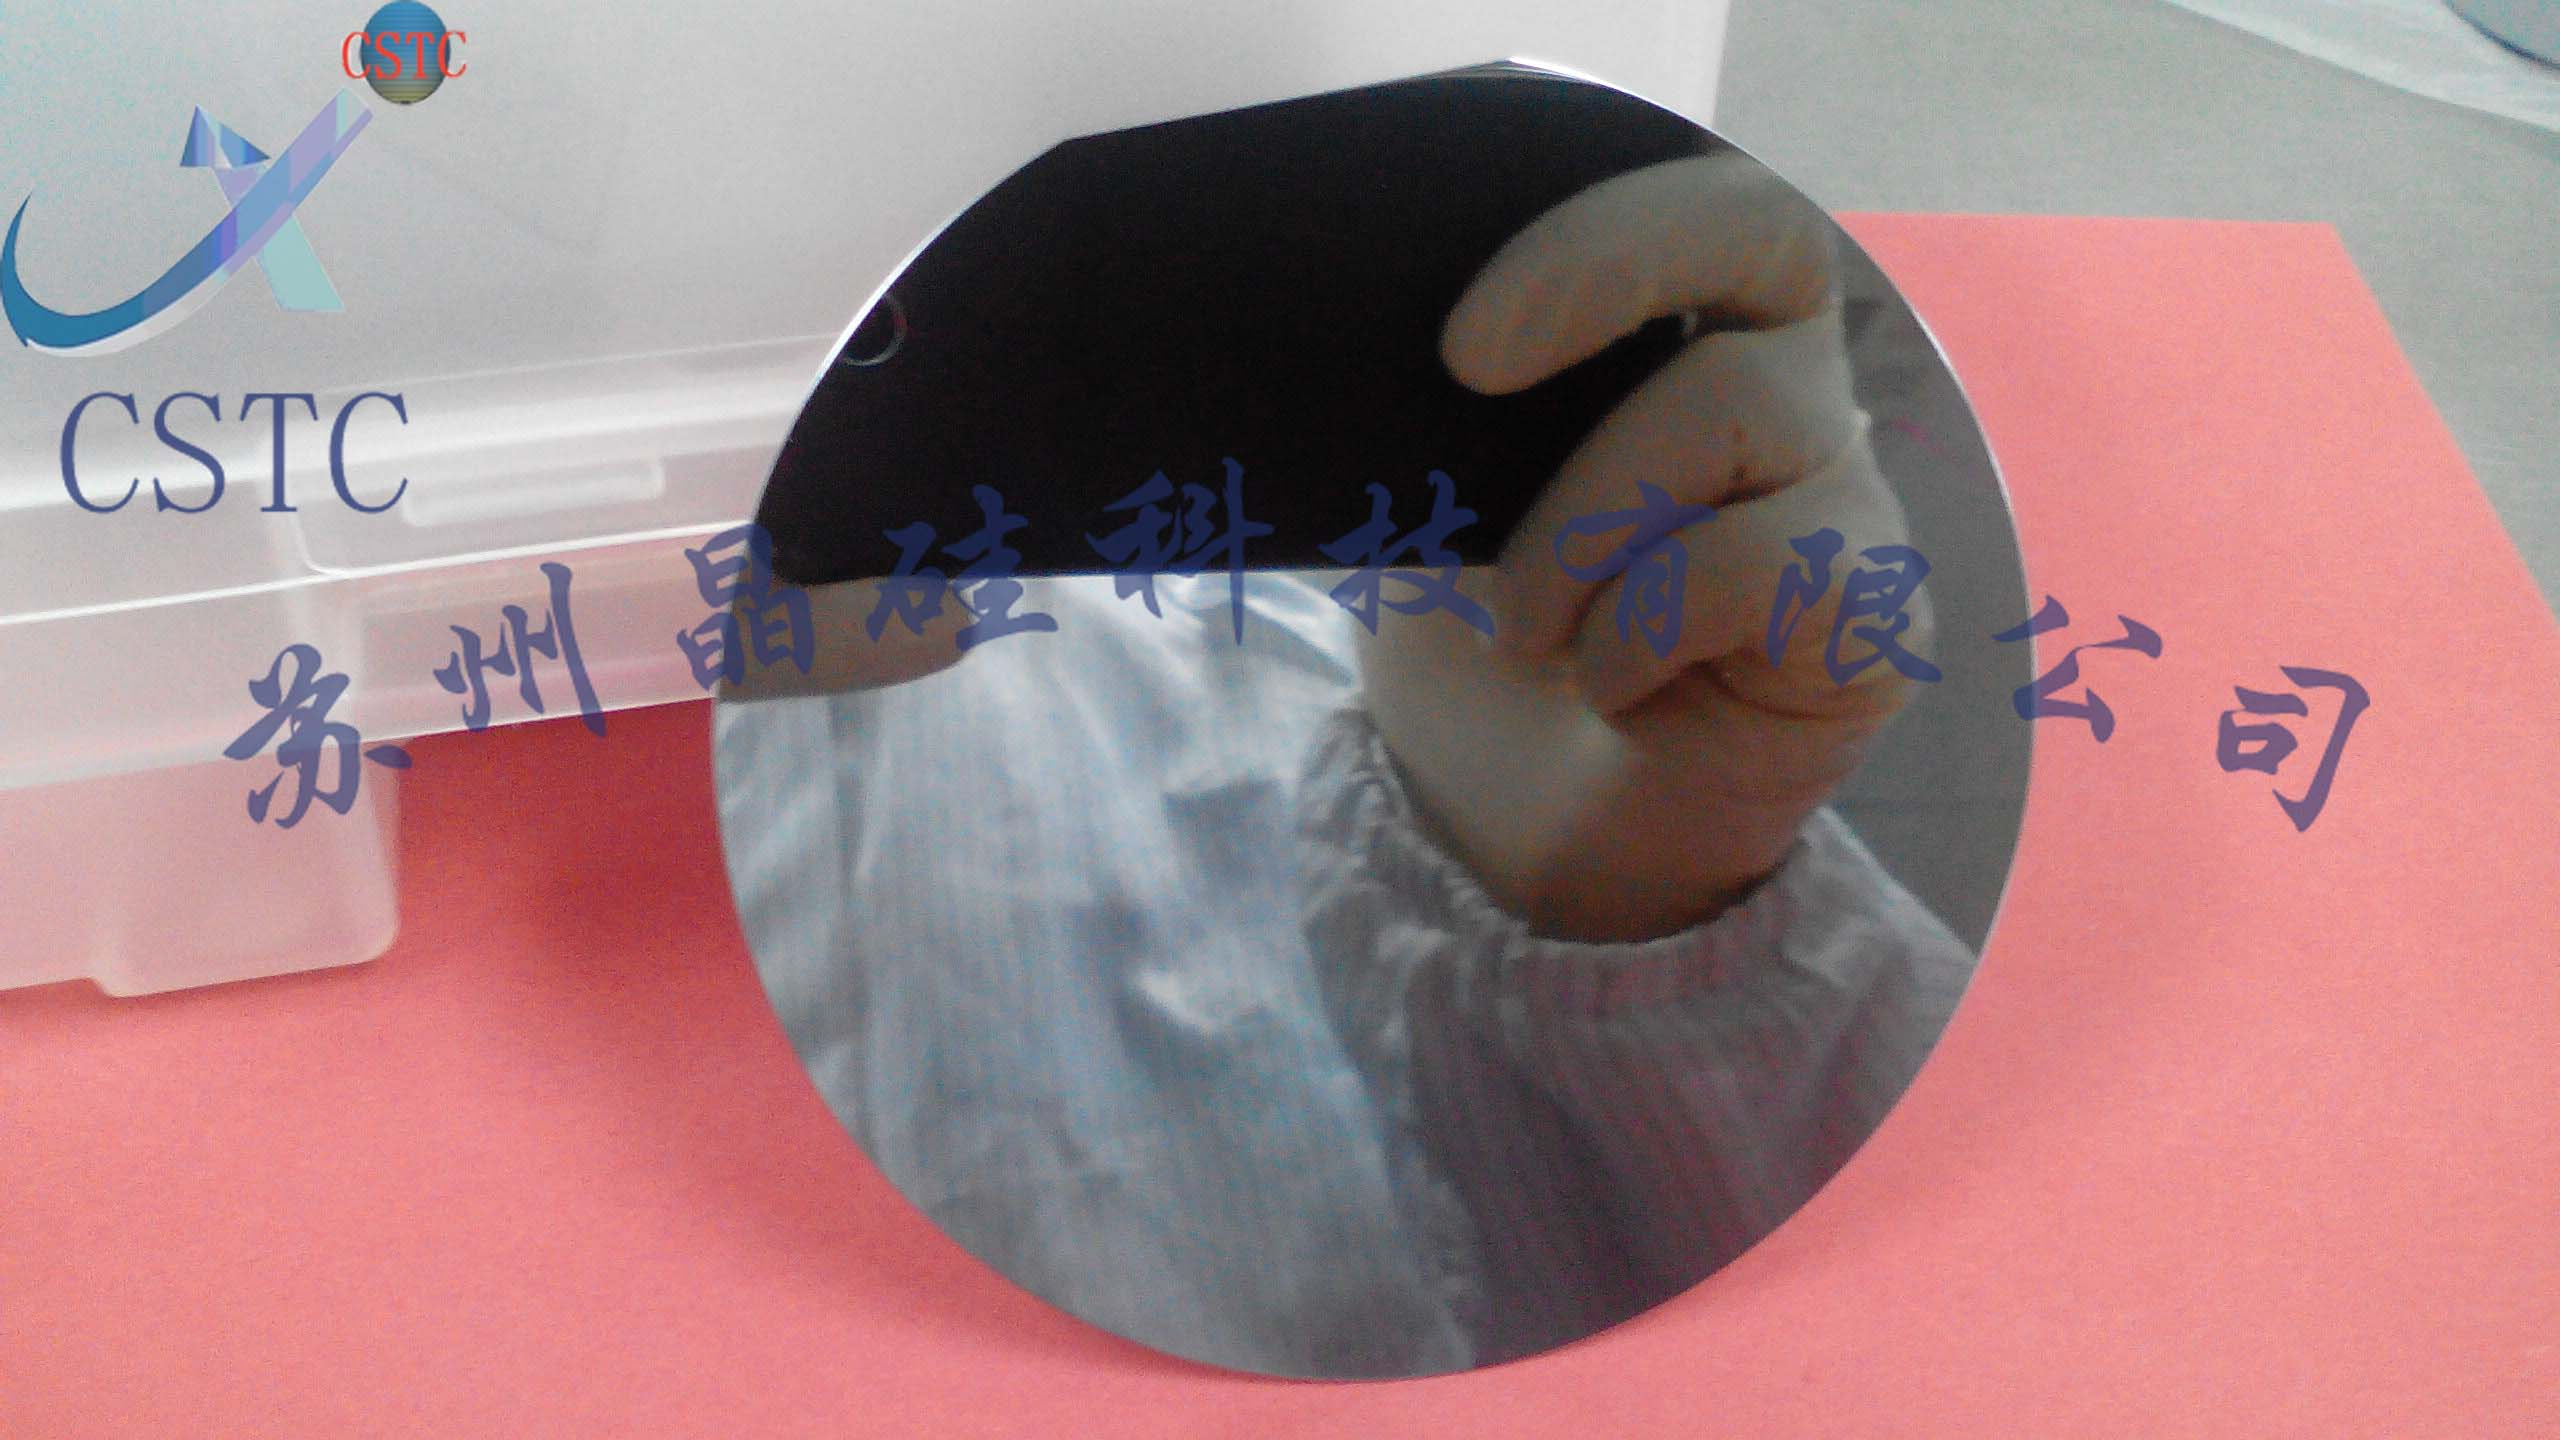 4 Inch Wafer Wafer IC Semiconductor High Purity Single Crystal Polishing Silicon Wafer with Electron Microscope SEM Coating 1000g 98% fish collagen powder high purity for functional food